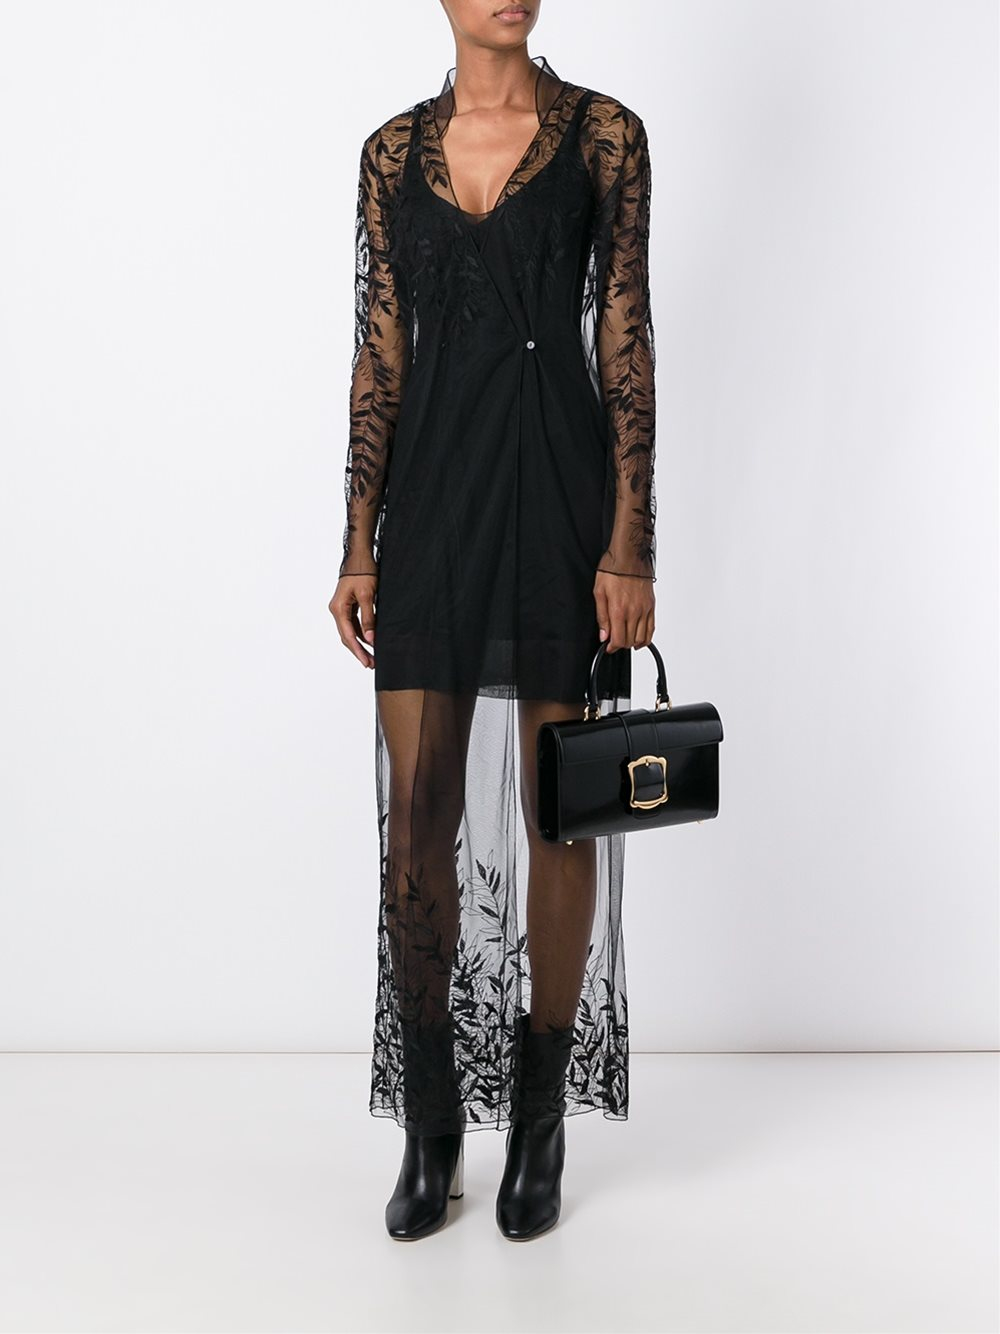 Attico Sheer Lace Overlay Dress In Black Lyst